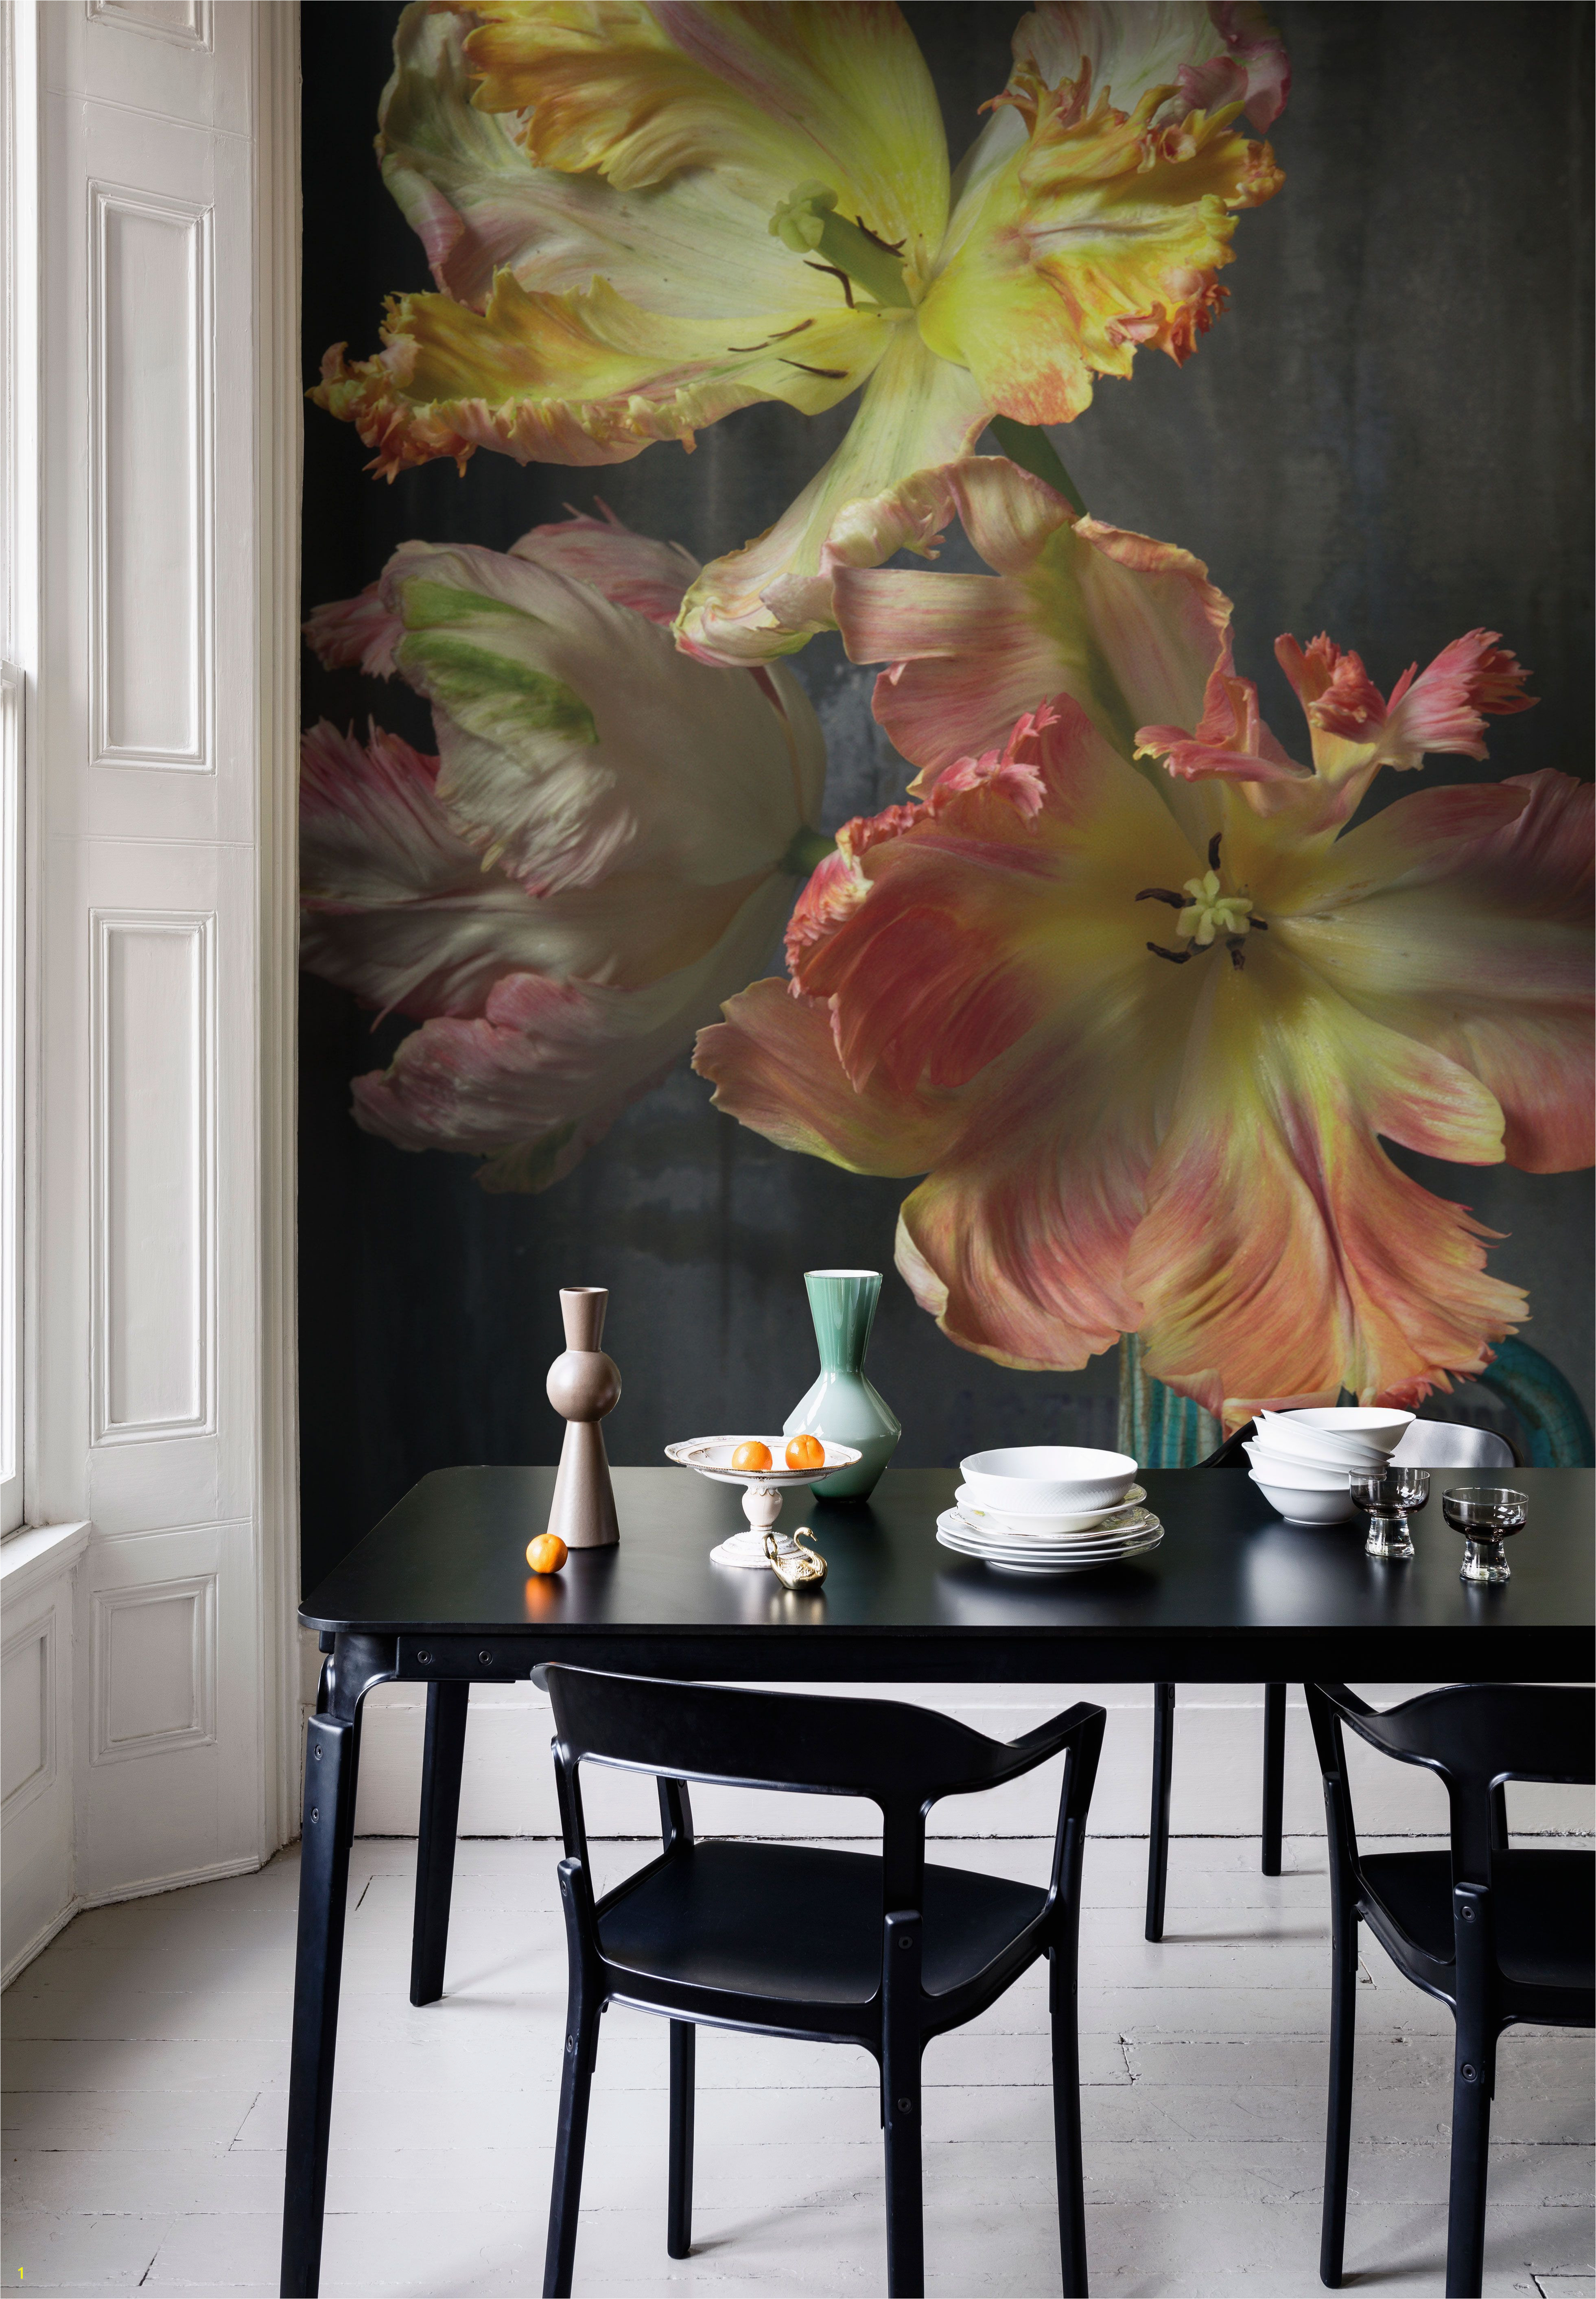 Bursting Flower Still Mural Trunk Archive Collection from £65 per sq m